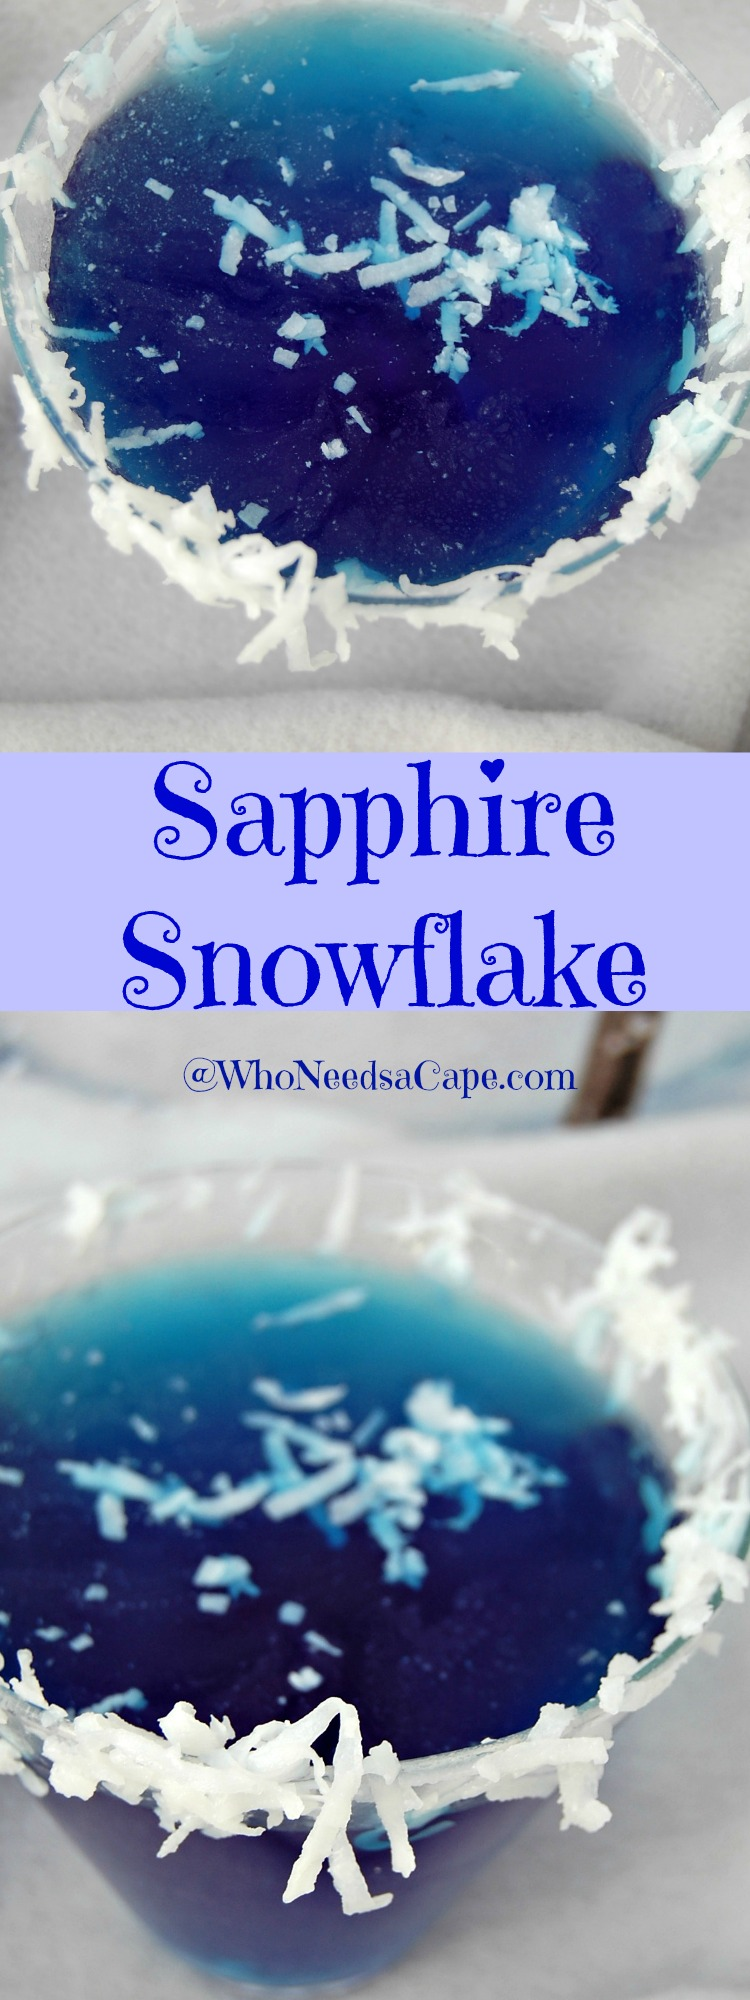 The Sapphire Snowflake Martini will take you away to a tropical paradise! Leave winter behind with this delicious cocktail!